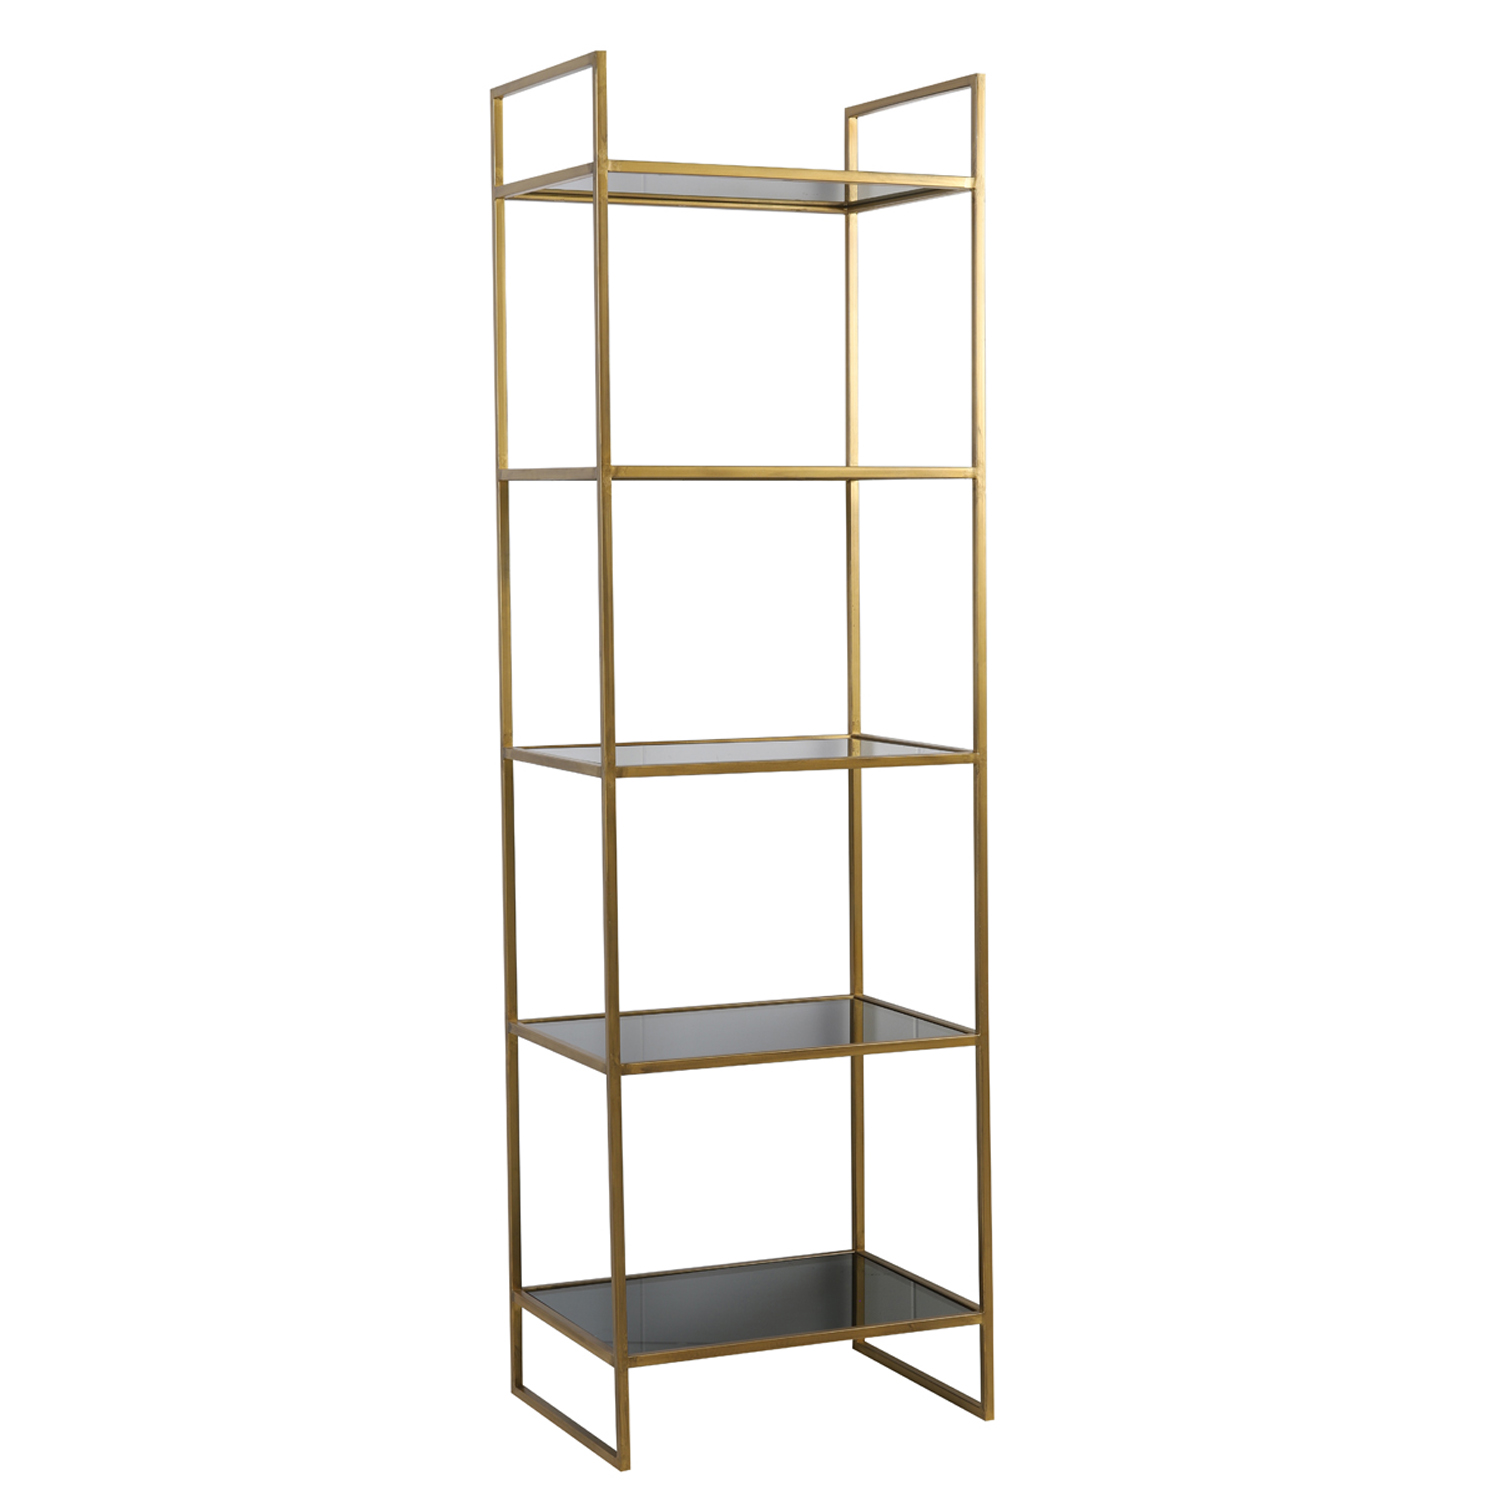 1376 Black/gold tall shelves